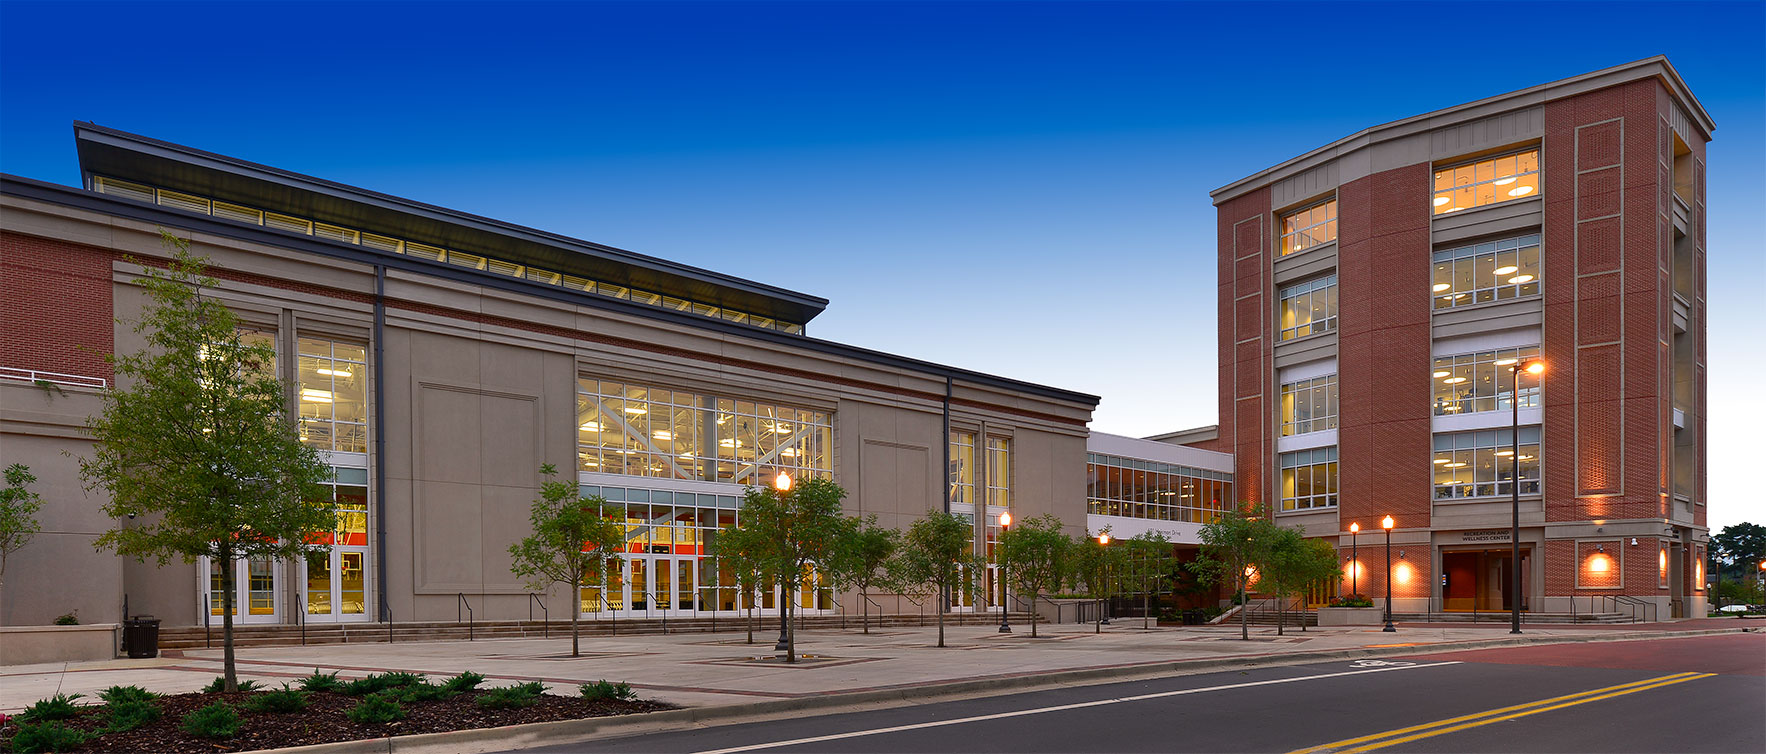 Exterior view of the Auburn University Recreation and Wellness Center